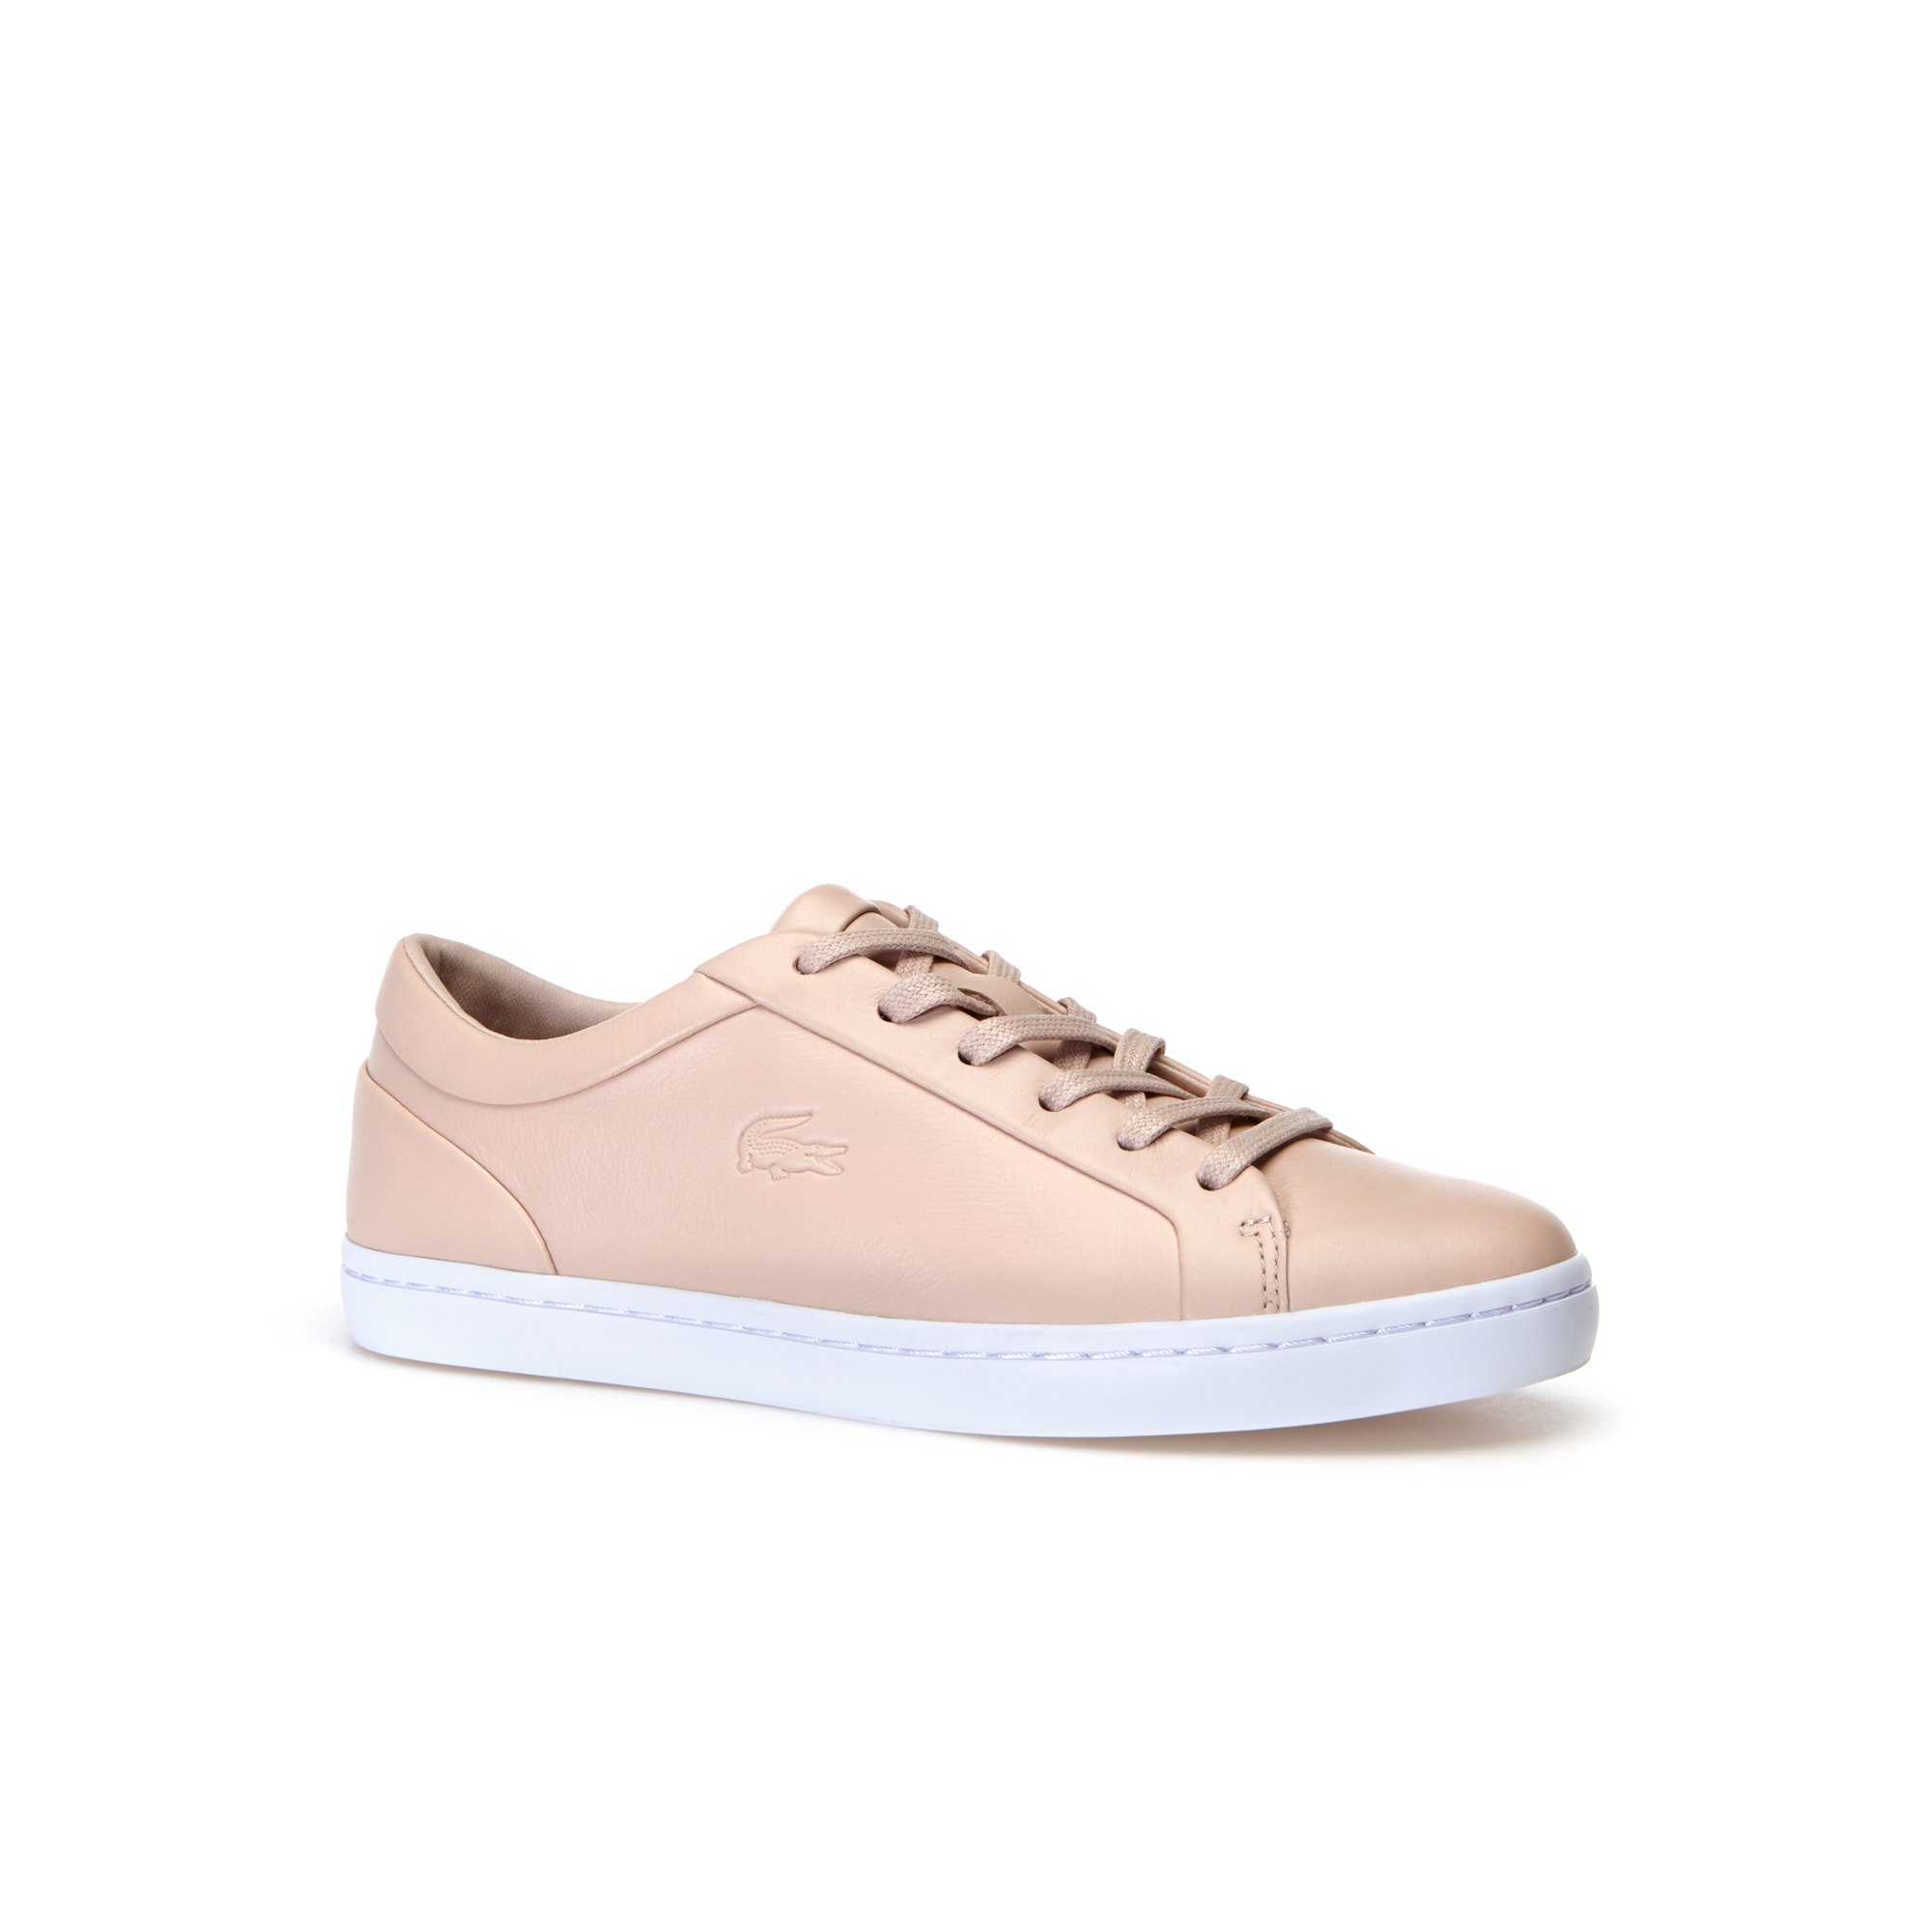 Women's Straightset Low-Rise Monochrome Leather trainers